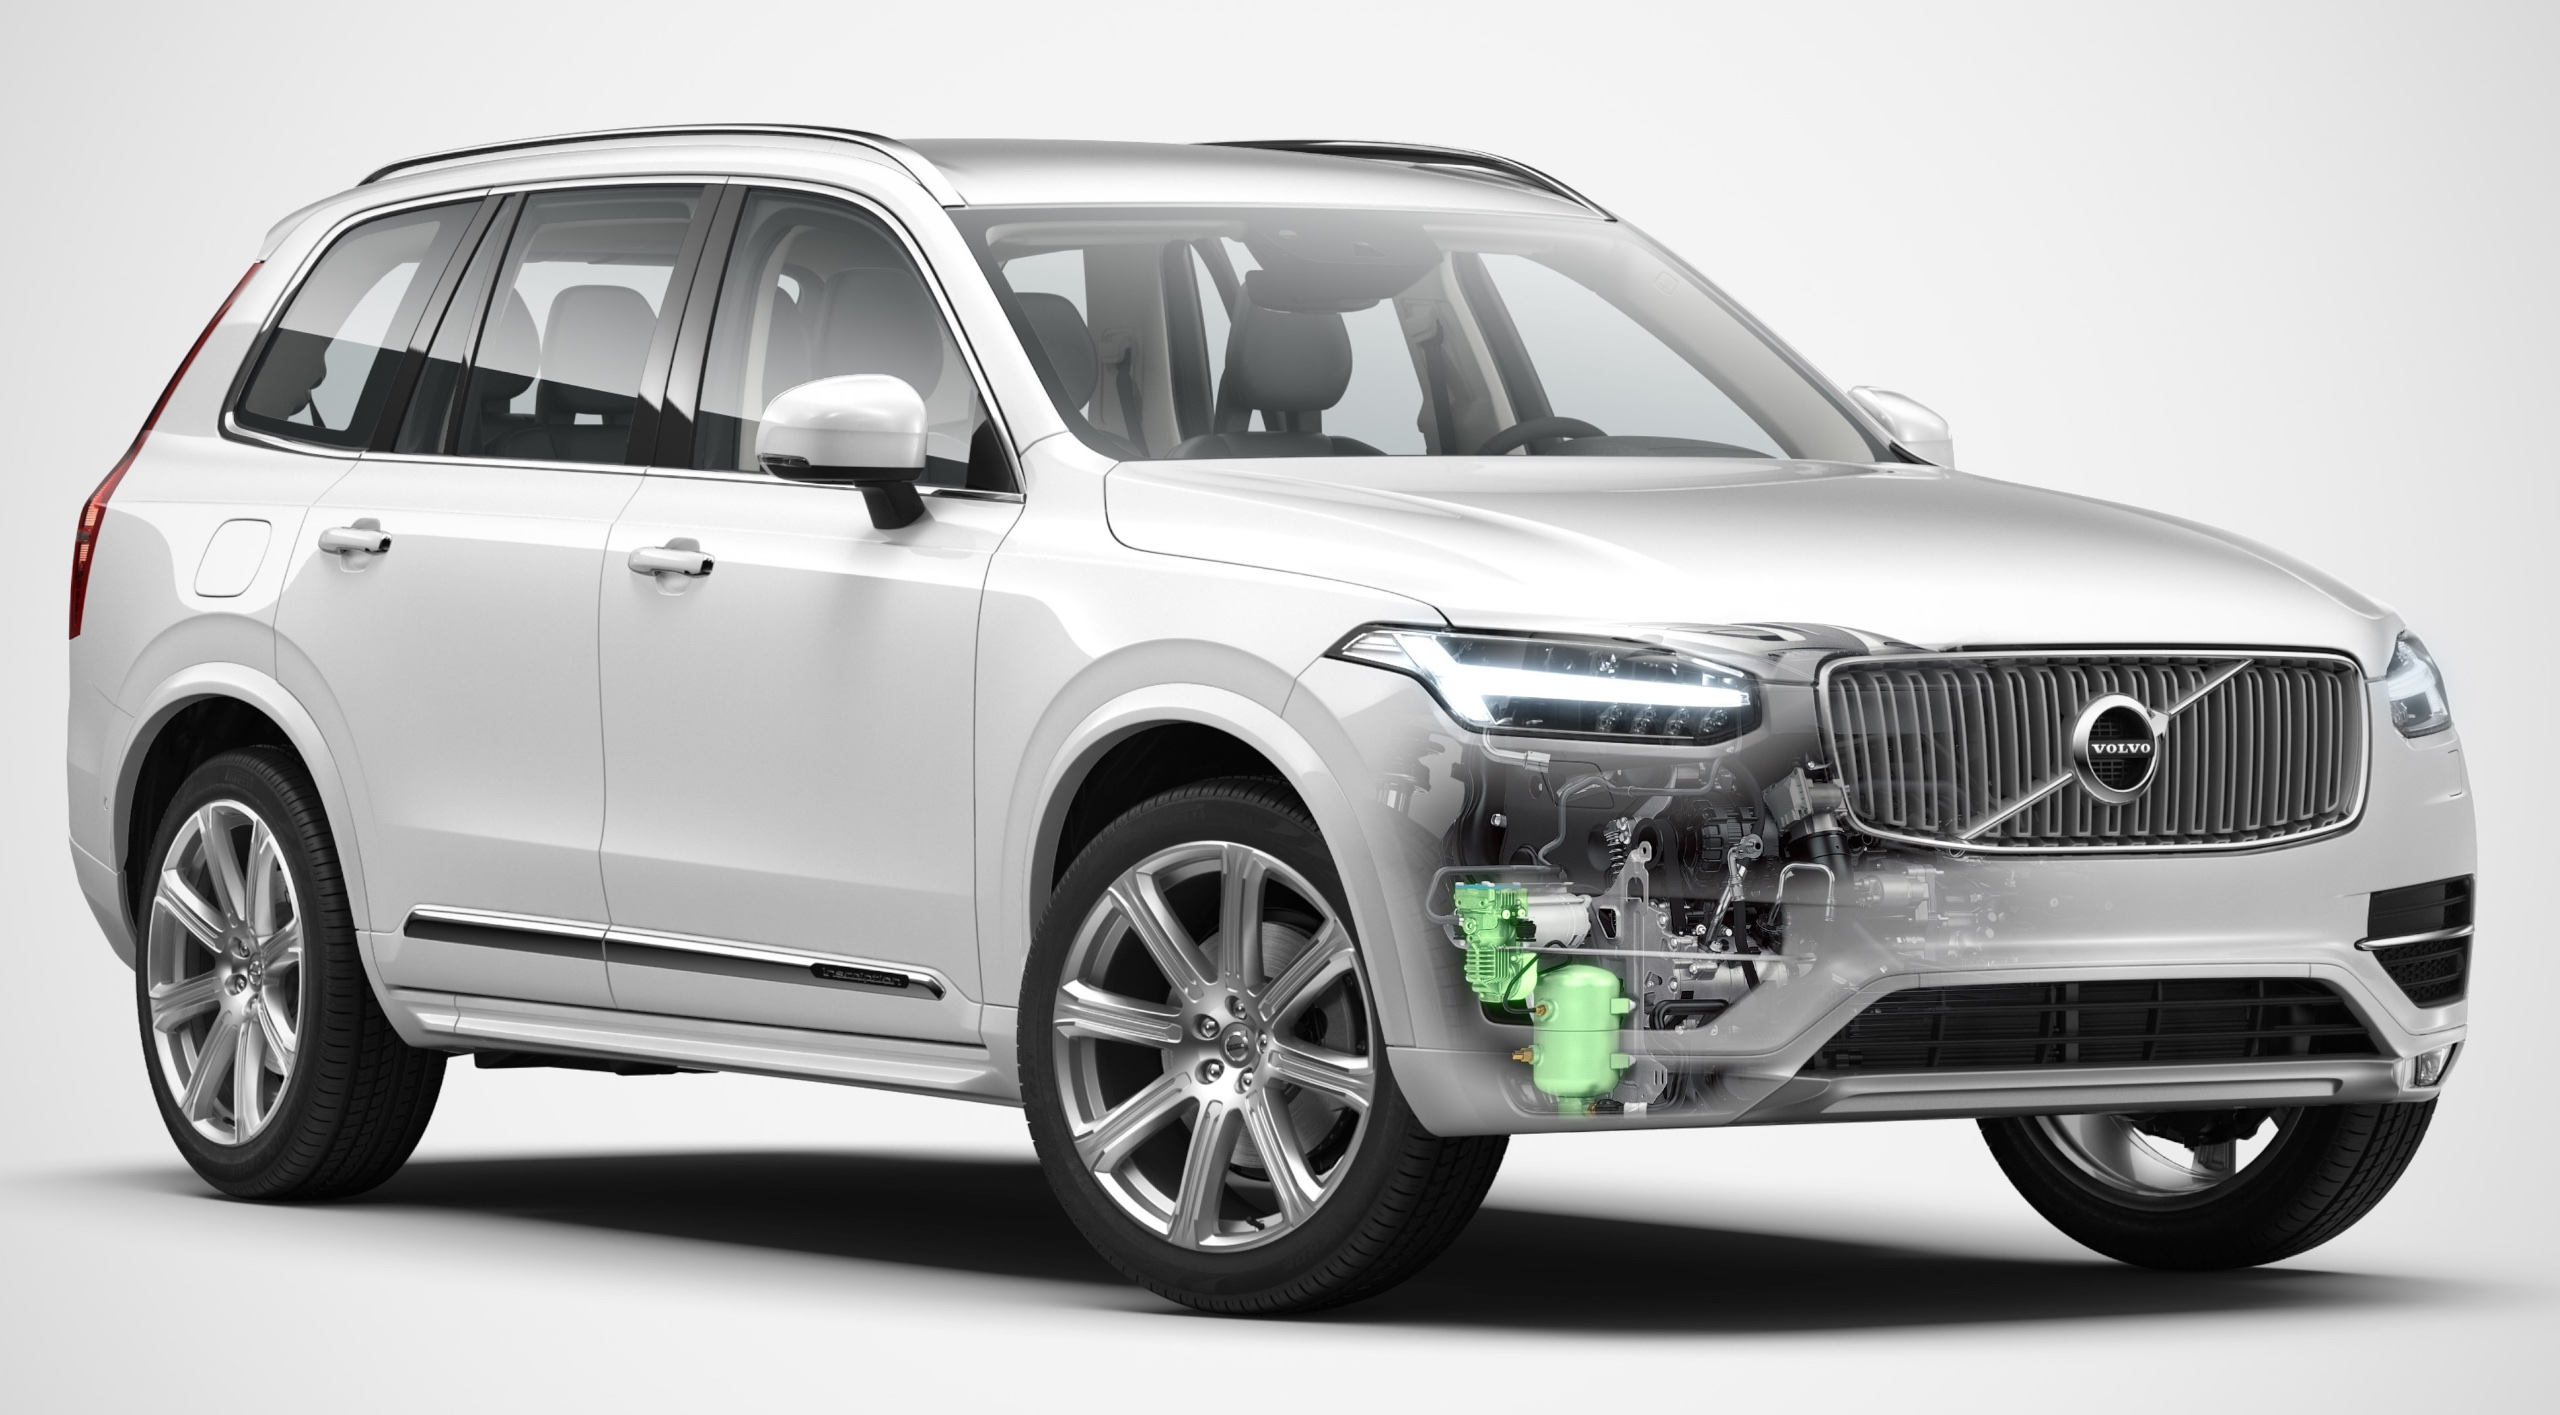 VIDEO: How Volvo overcomes turbo lag in its engines